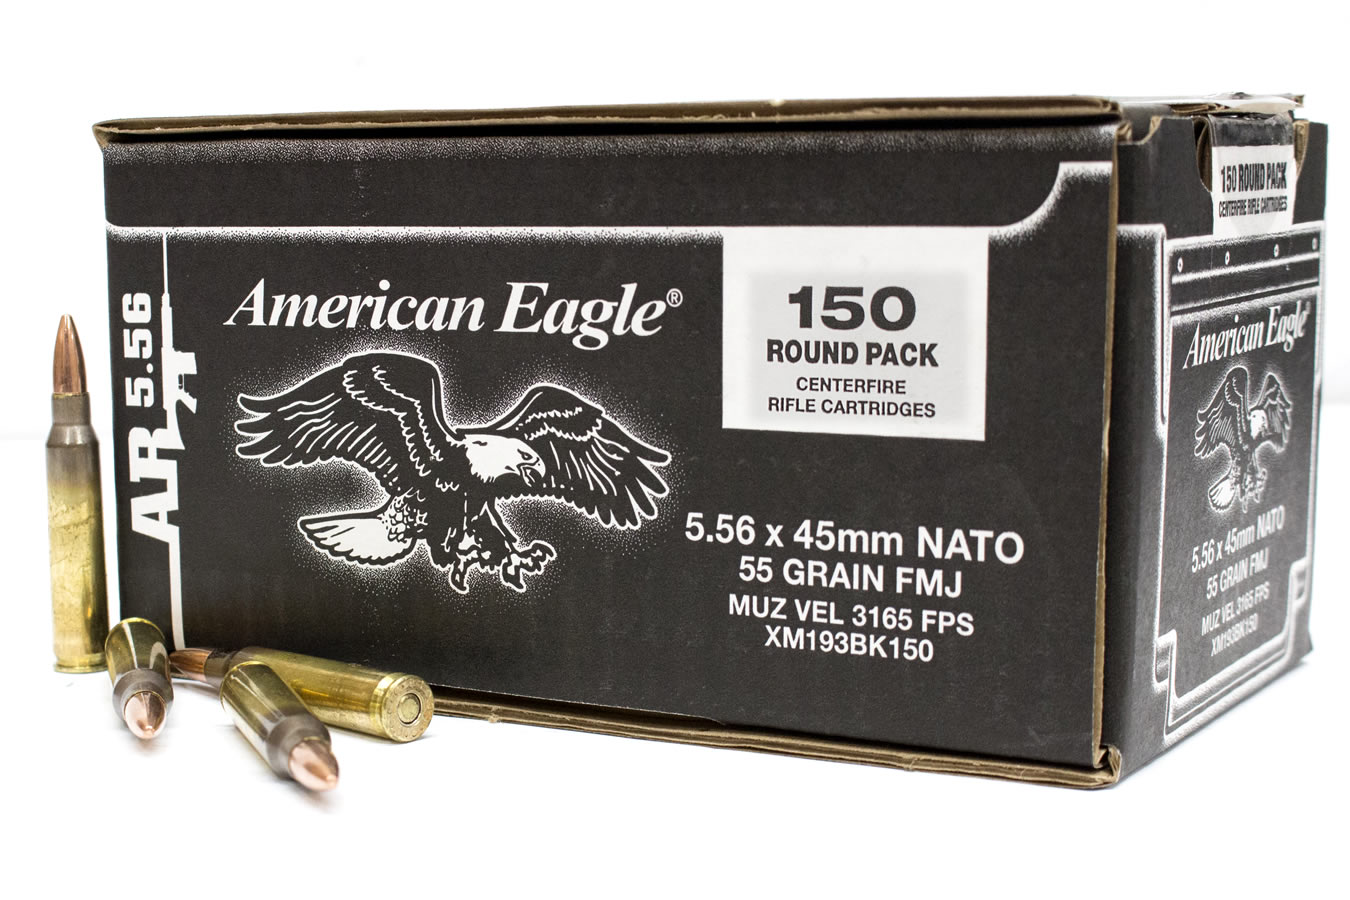 XM193 5.56MM 55 GR FMJ 150 ROUND PACK